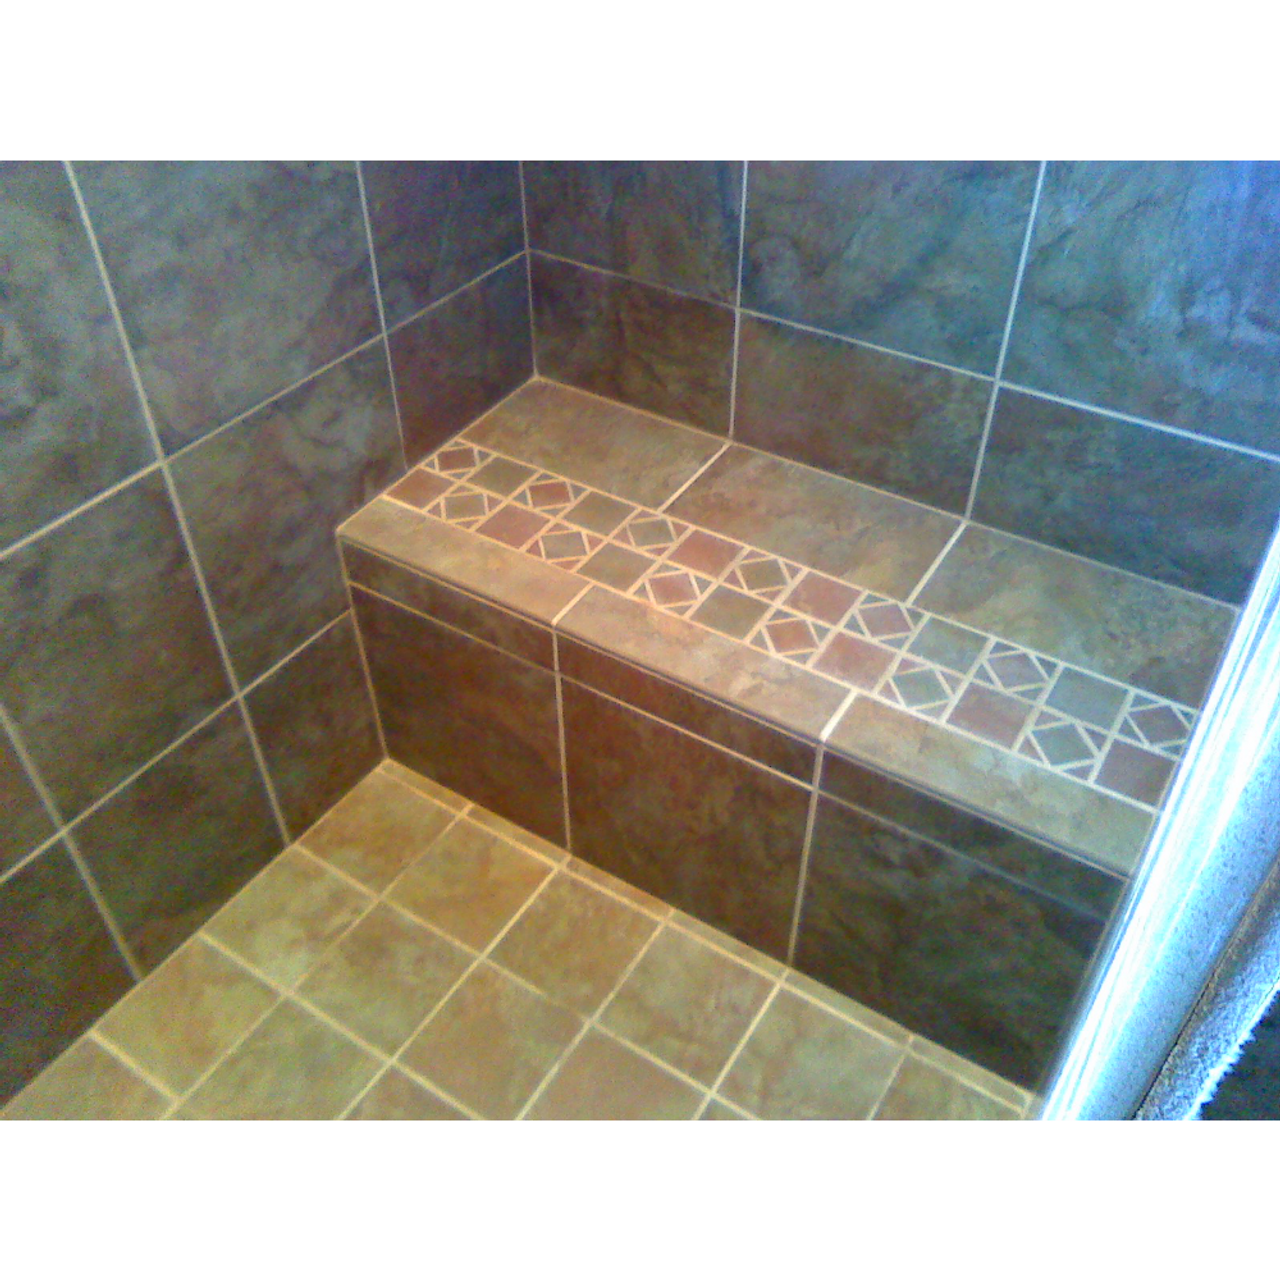 redi shower in shelves dimensions bench a height video install tile seats corner to designs how installation seat build ideas and